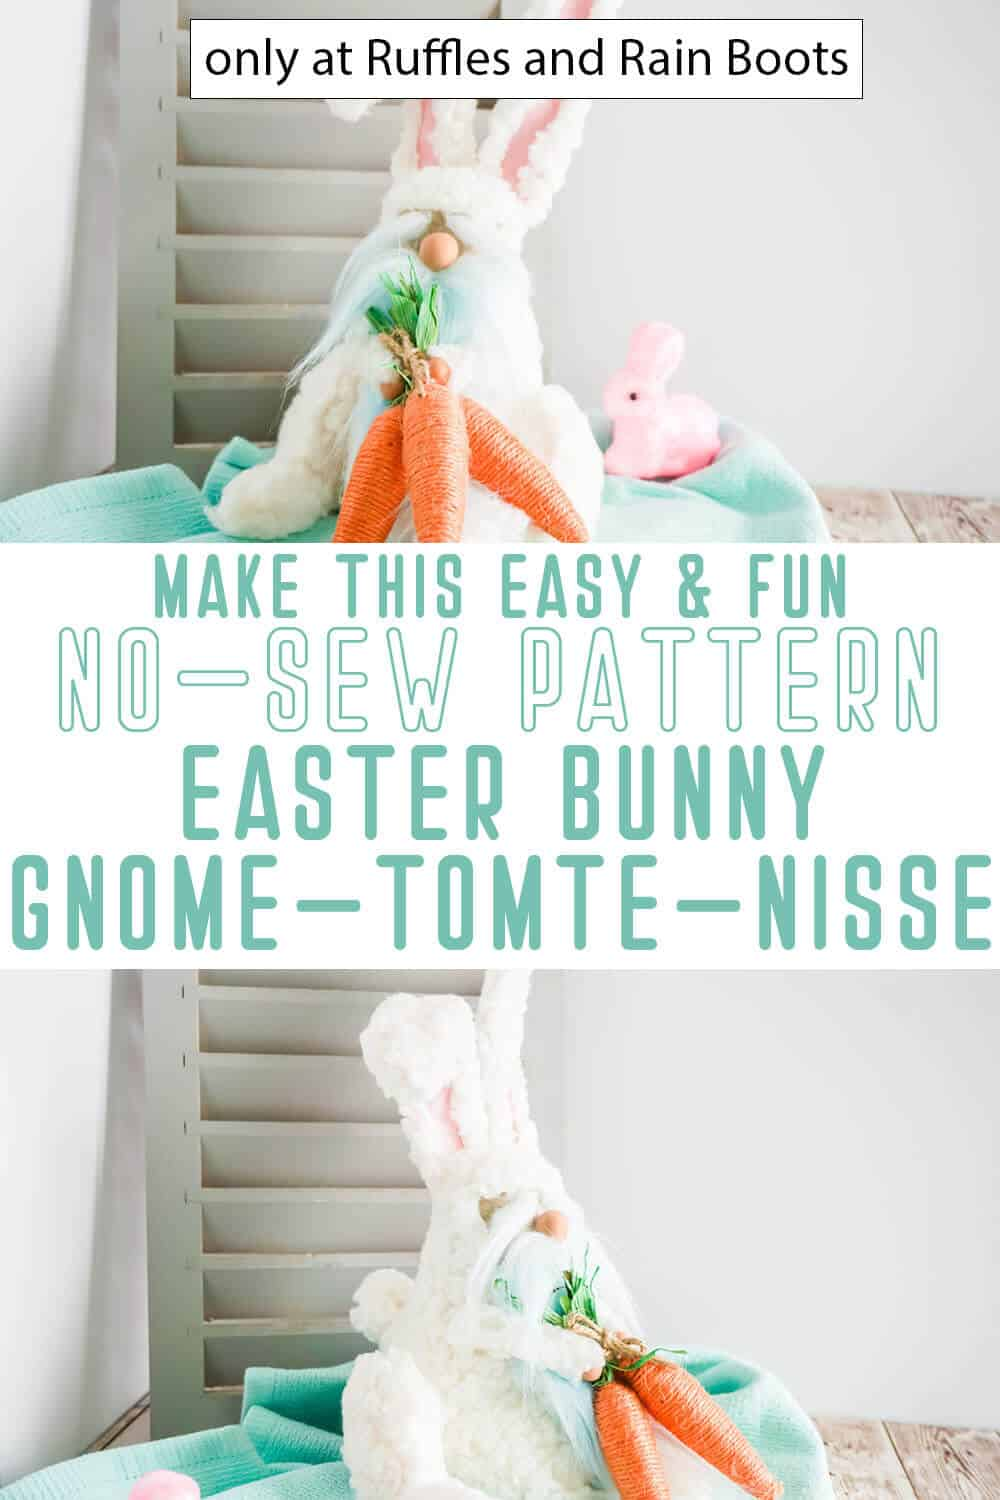 photo collage of no-sew easter bunny gnome pattern tucked gnome with text which reads make this easy & fun no-sew pattern easter bunny gnome tomte nisse